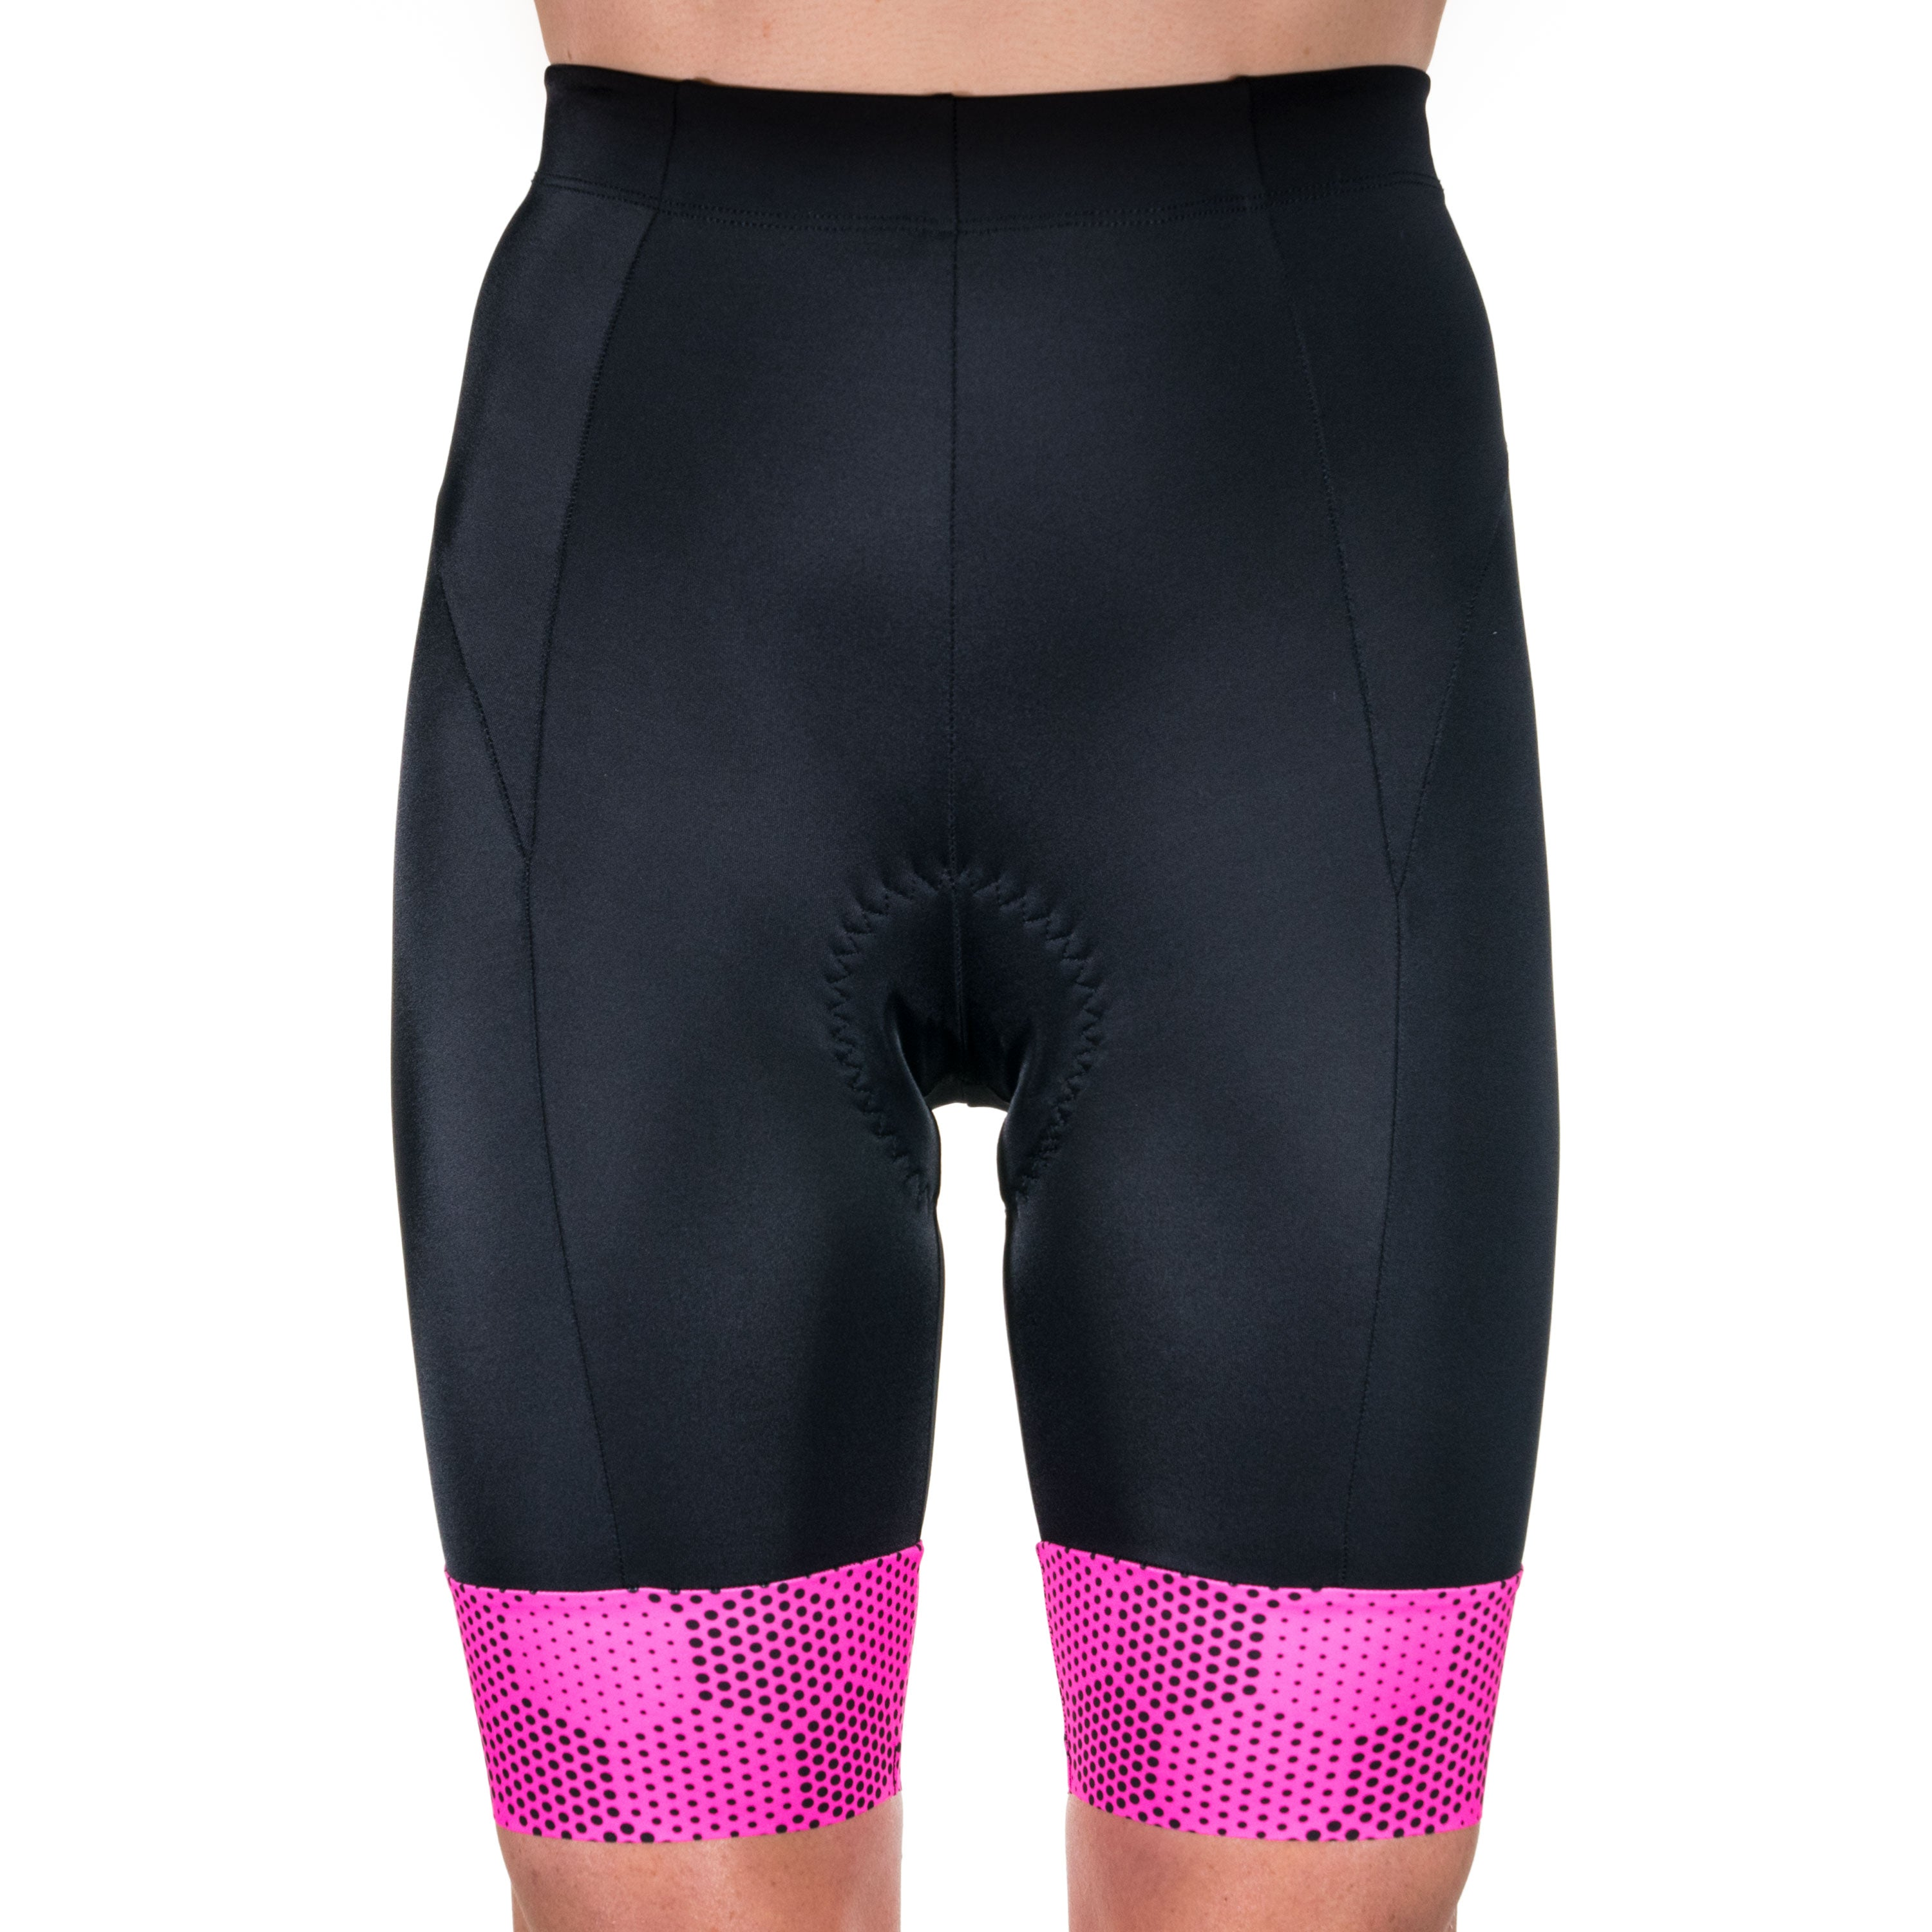 WOMEN'S HEXHAM PINK CYCLE SHORT